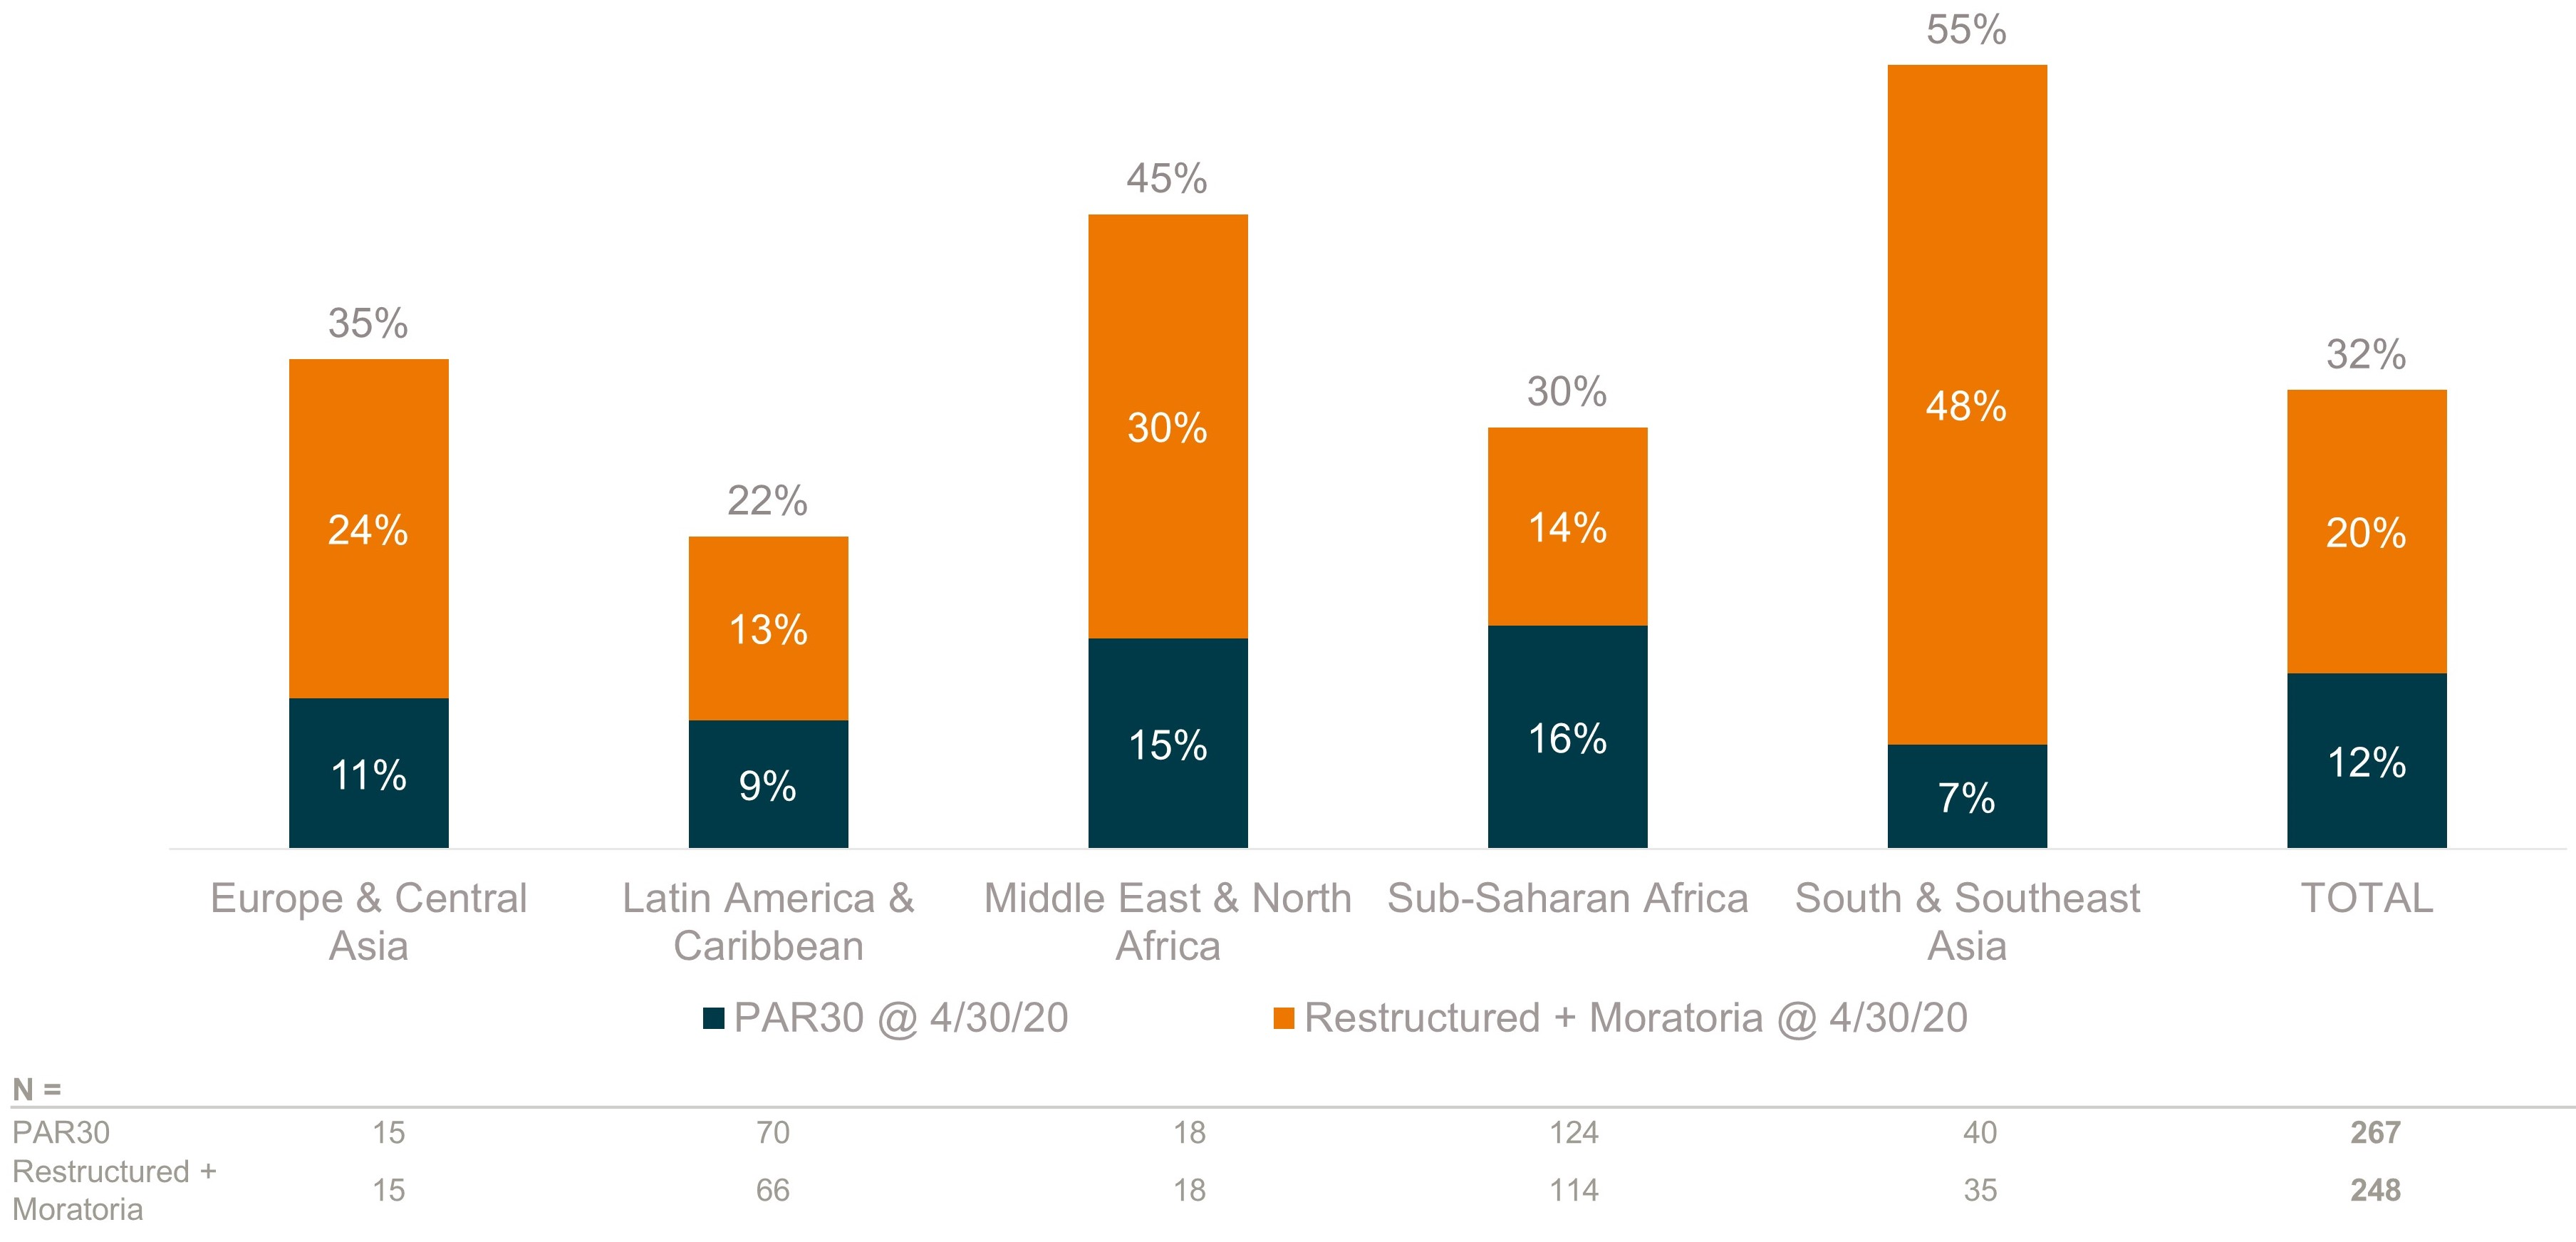 Troubled portfolios of microfinance institutions, by region, during COVID-19